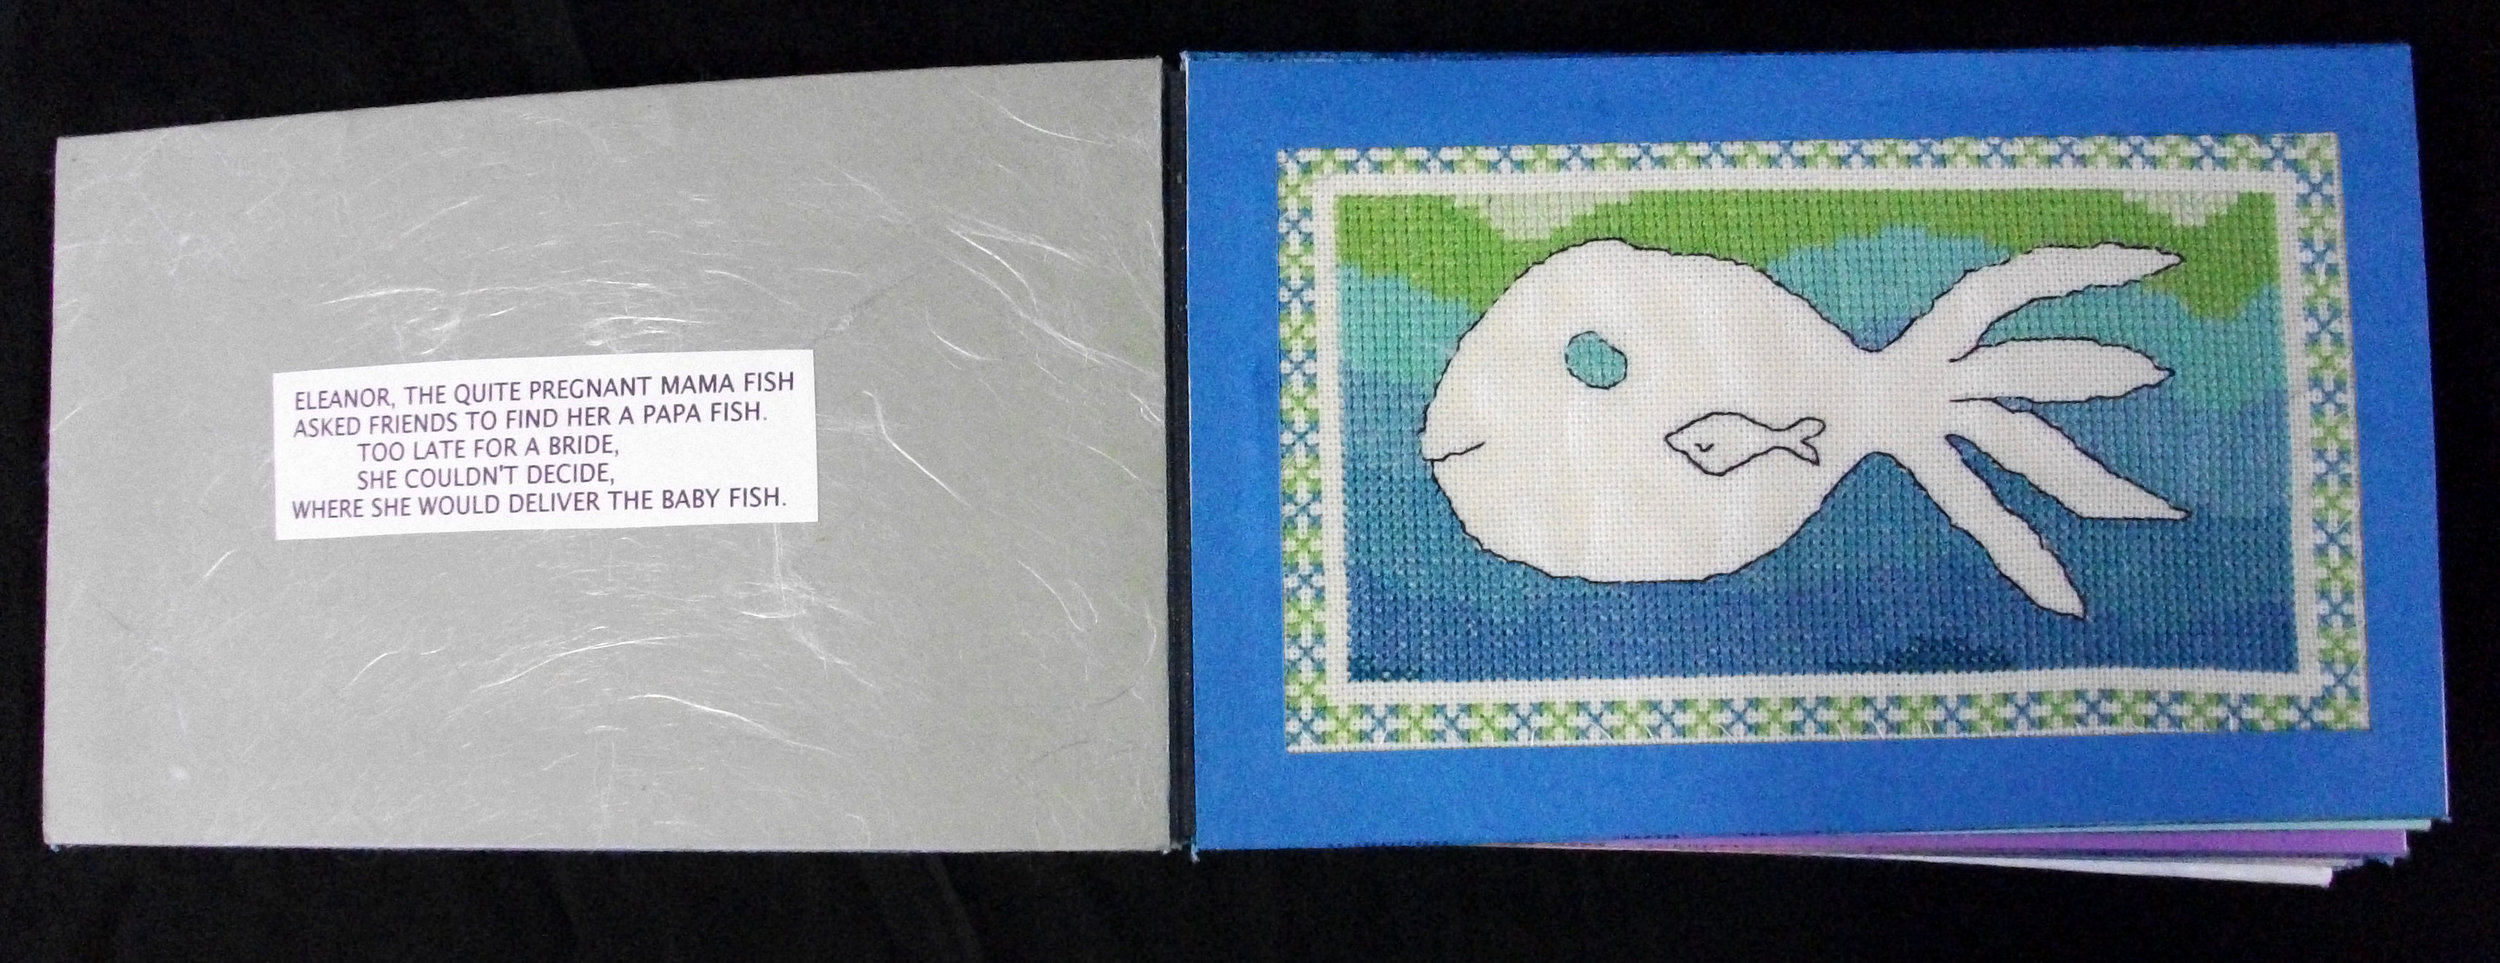 Garland Lewis,  Sea Creatures,  Embroidered Accordion Book, 2011, Ann Arbor, MI